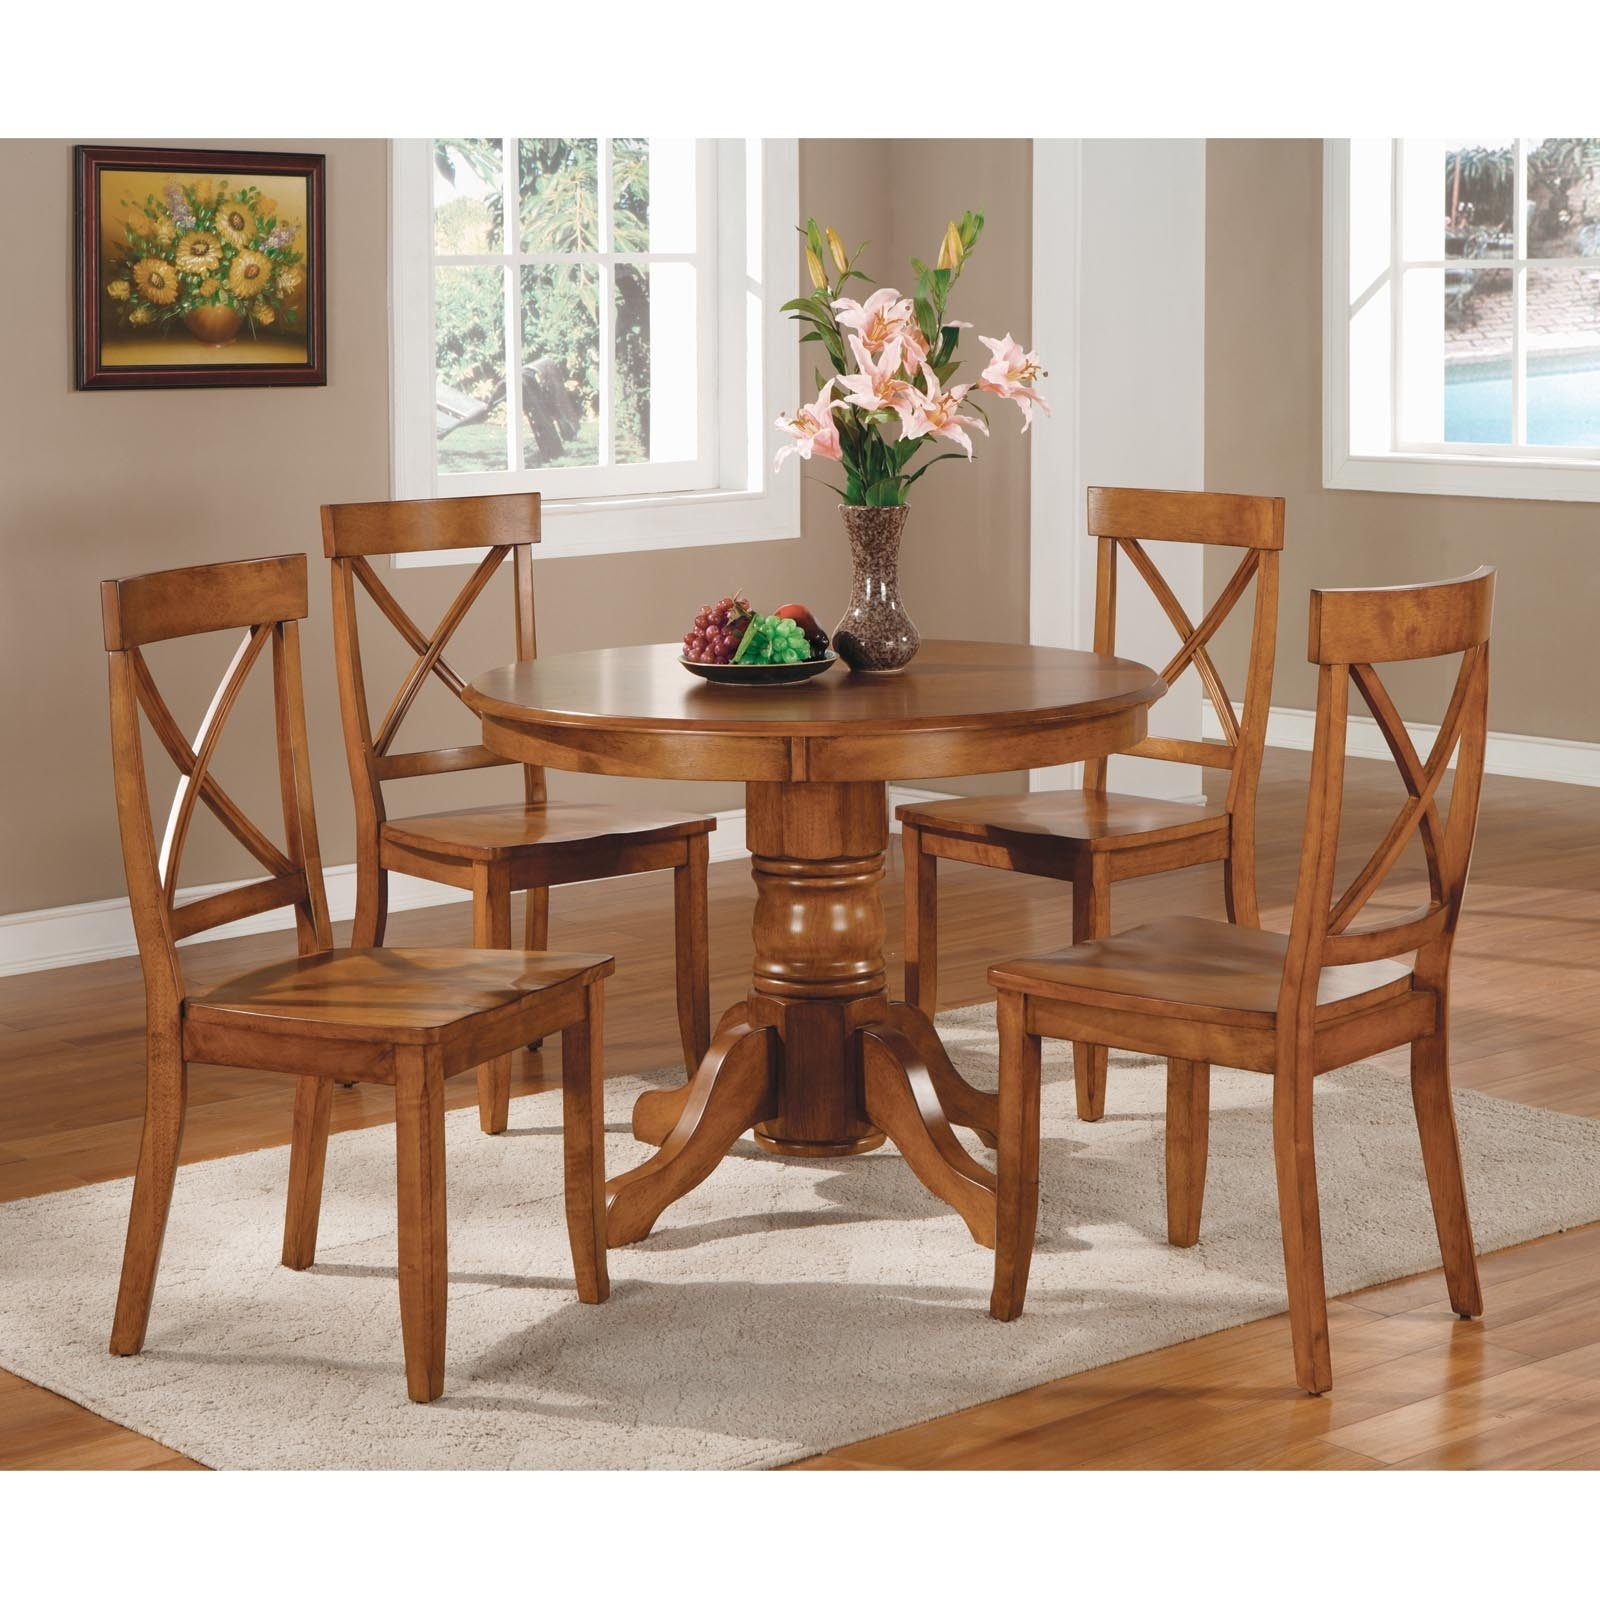 Round Oak Dining Tables And Chairs In Most Popular Home Styles Pedestal Dining Table, Cottage Oak – Walmart (View 15 of 25)